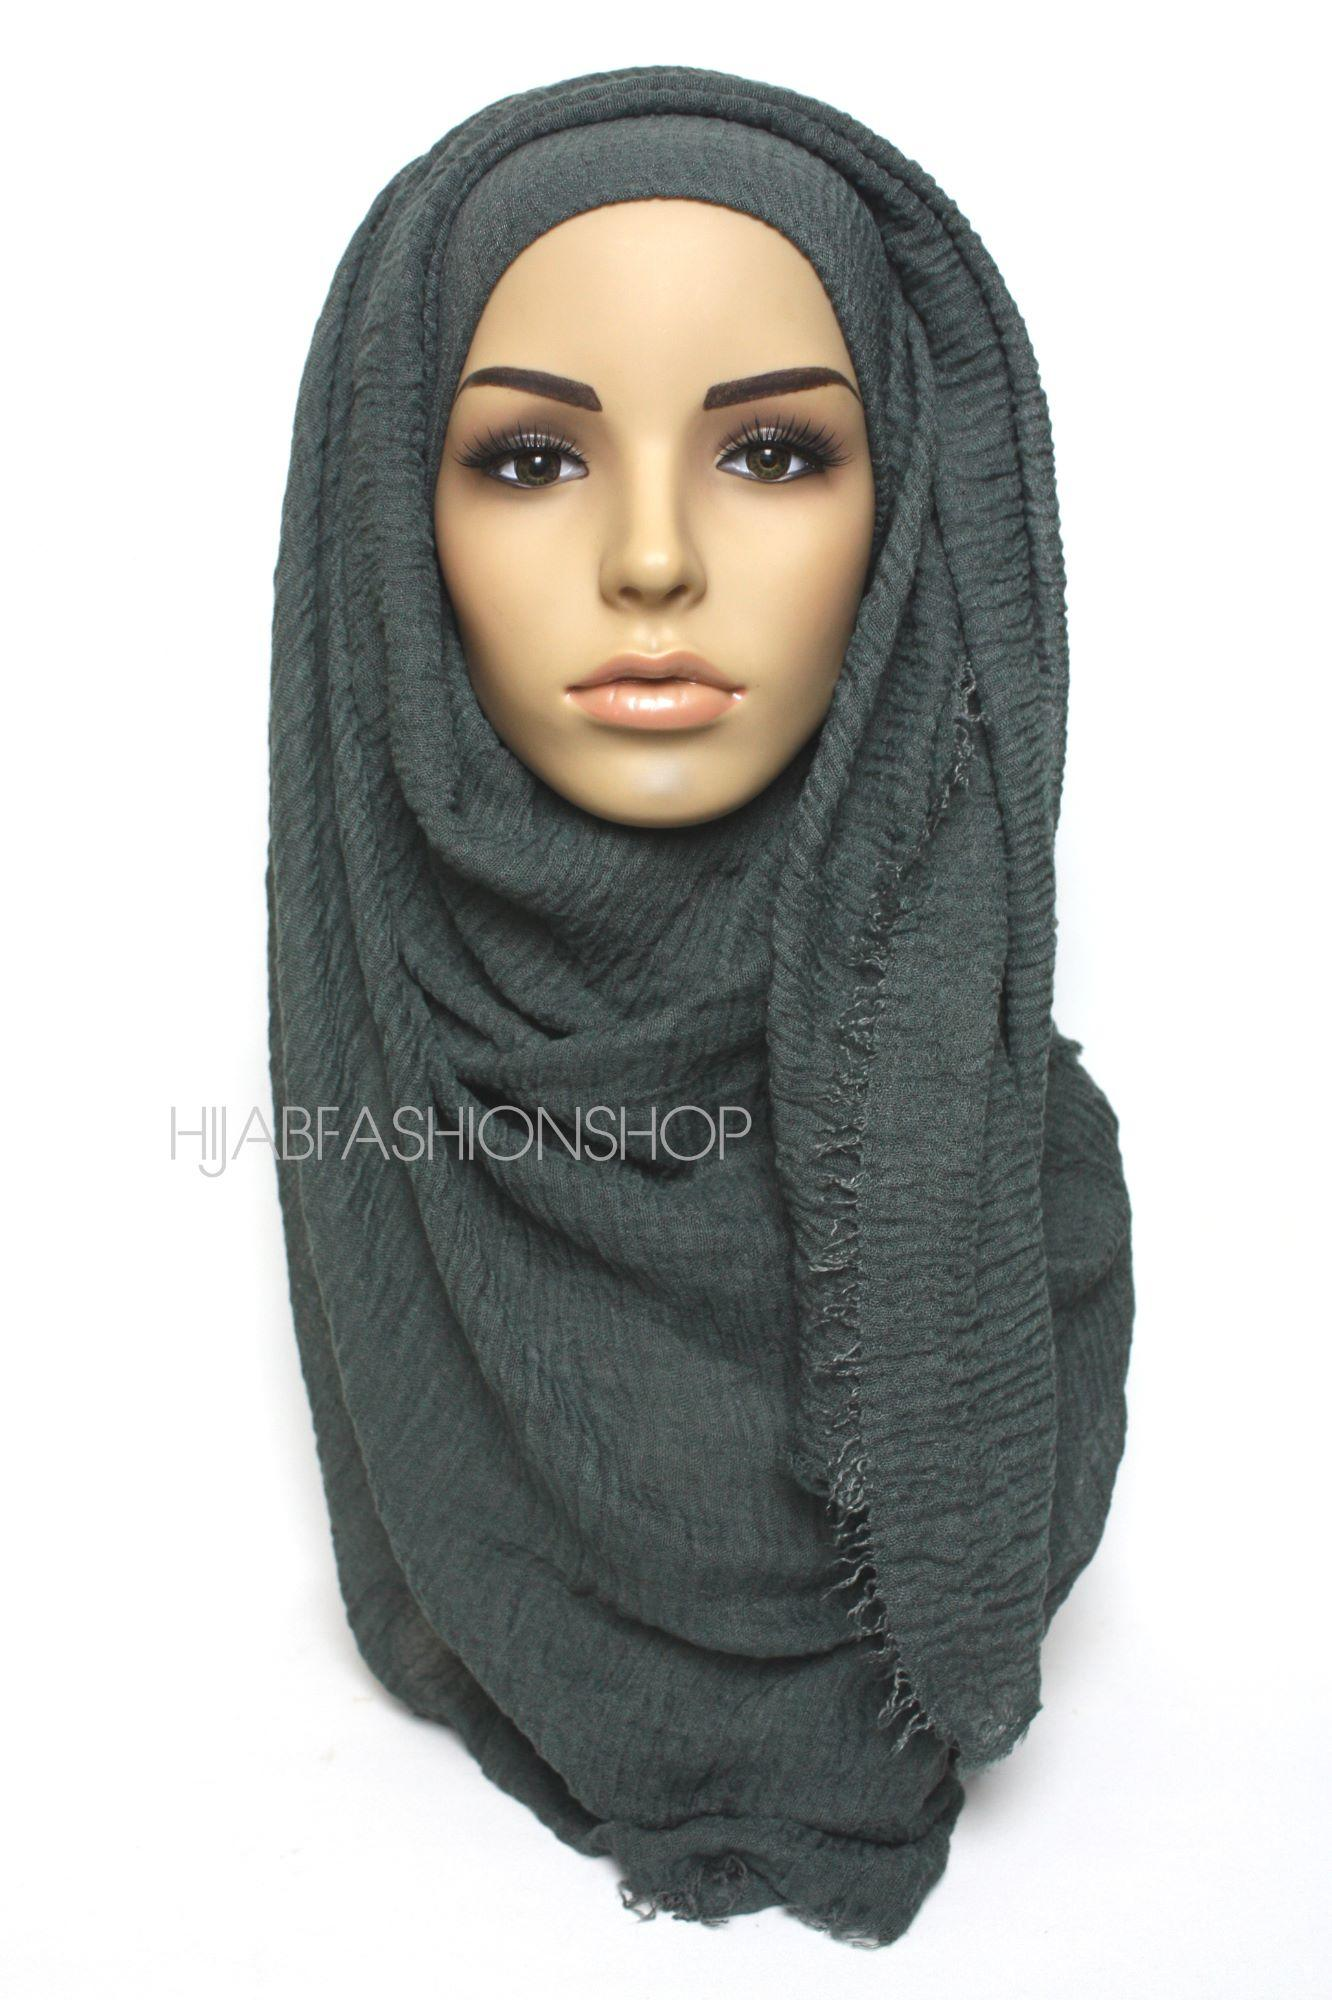 slate grey crimp crinkle hijab